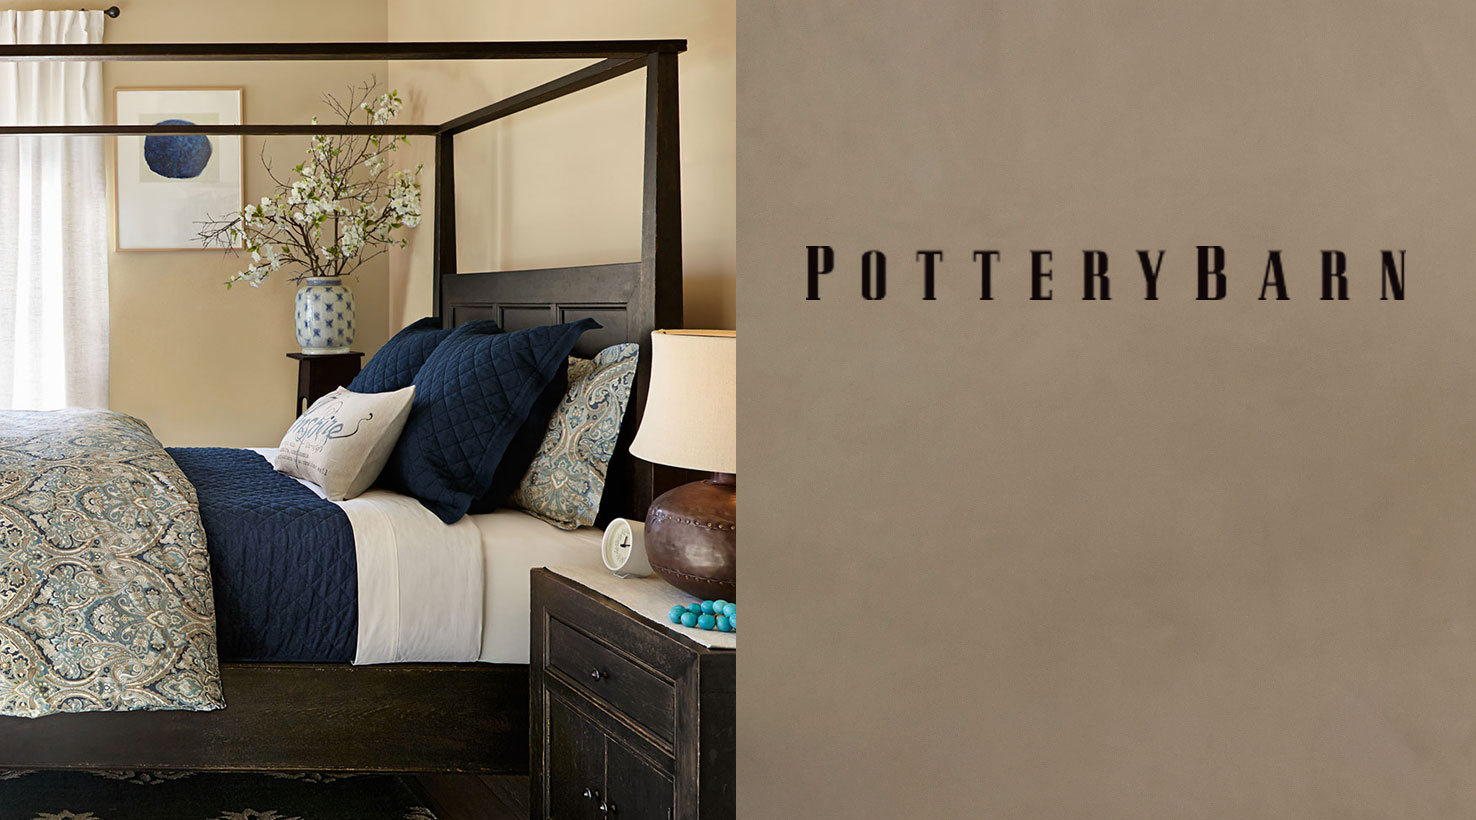 annie sloan sherwin match share the knownledge. Black Bedroom Furniture Sets. Home Design Ideas